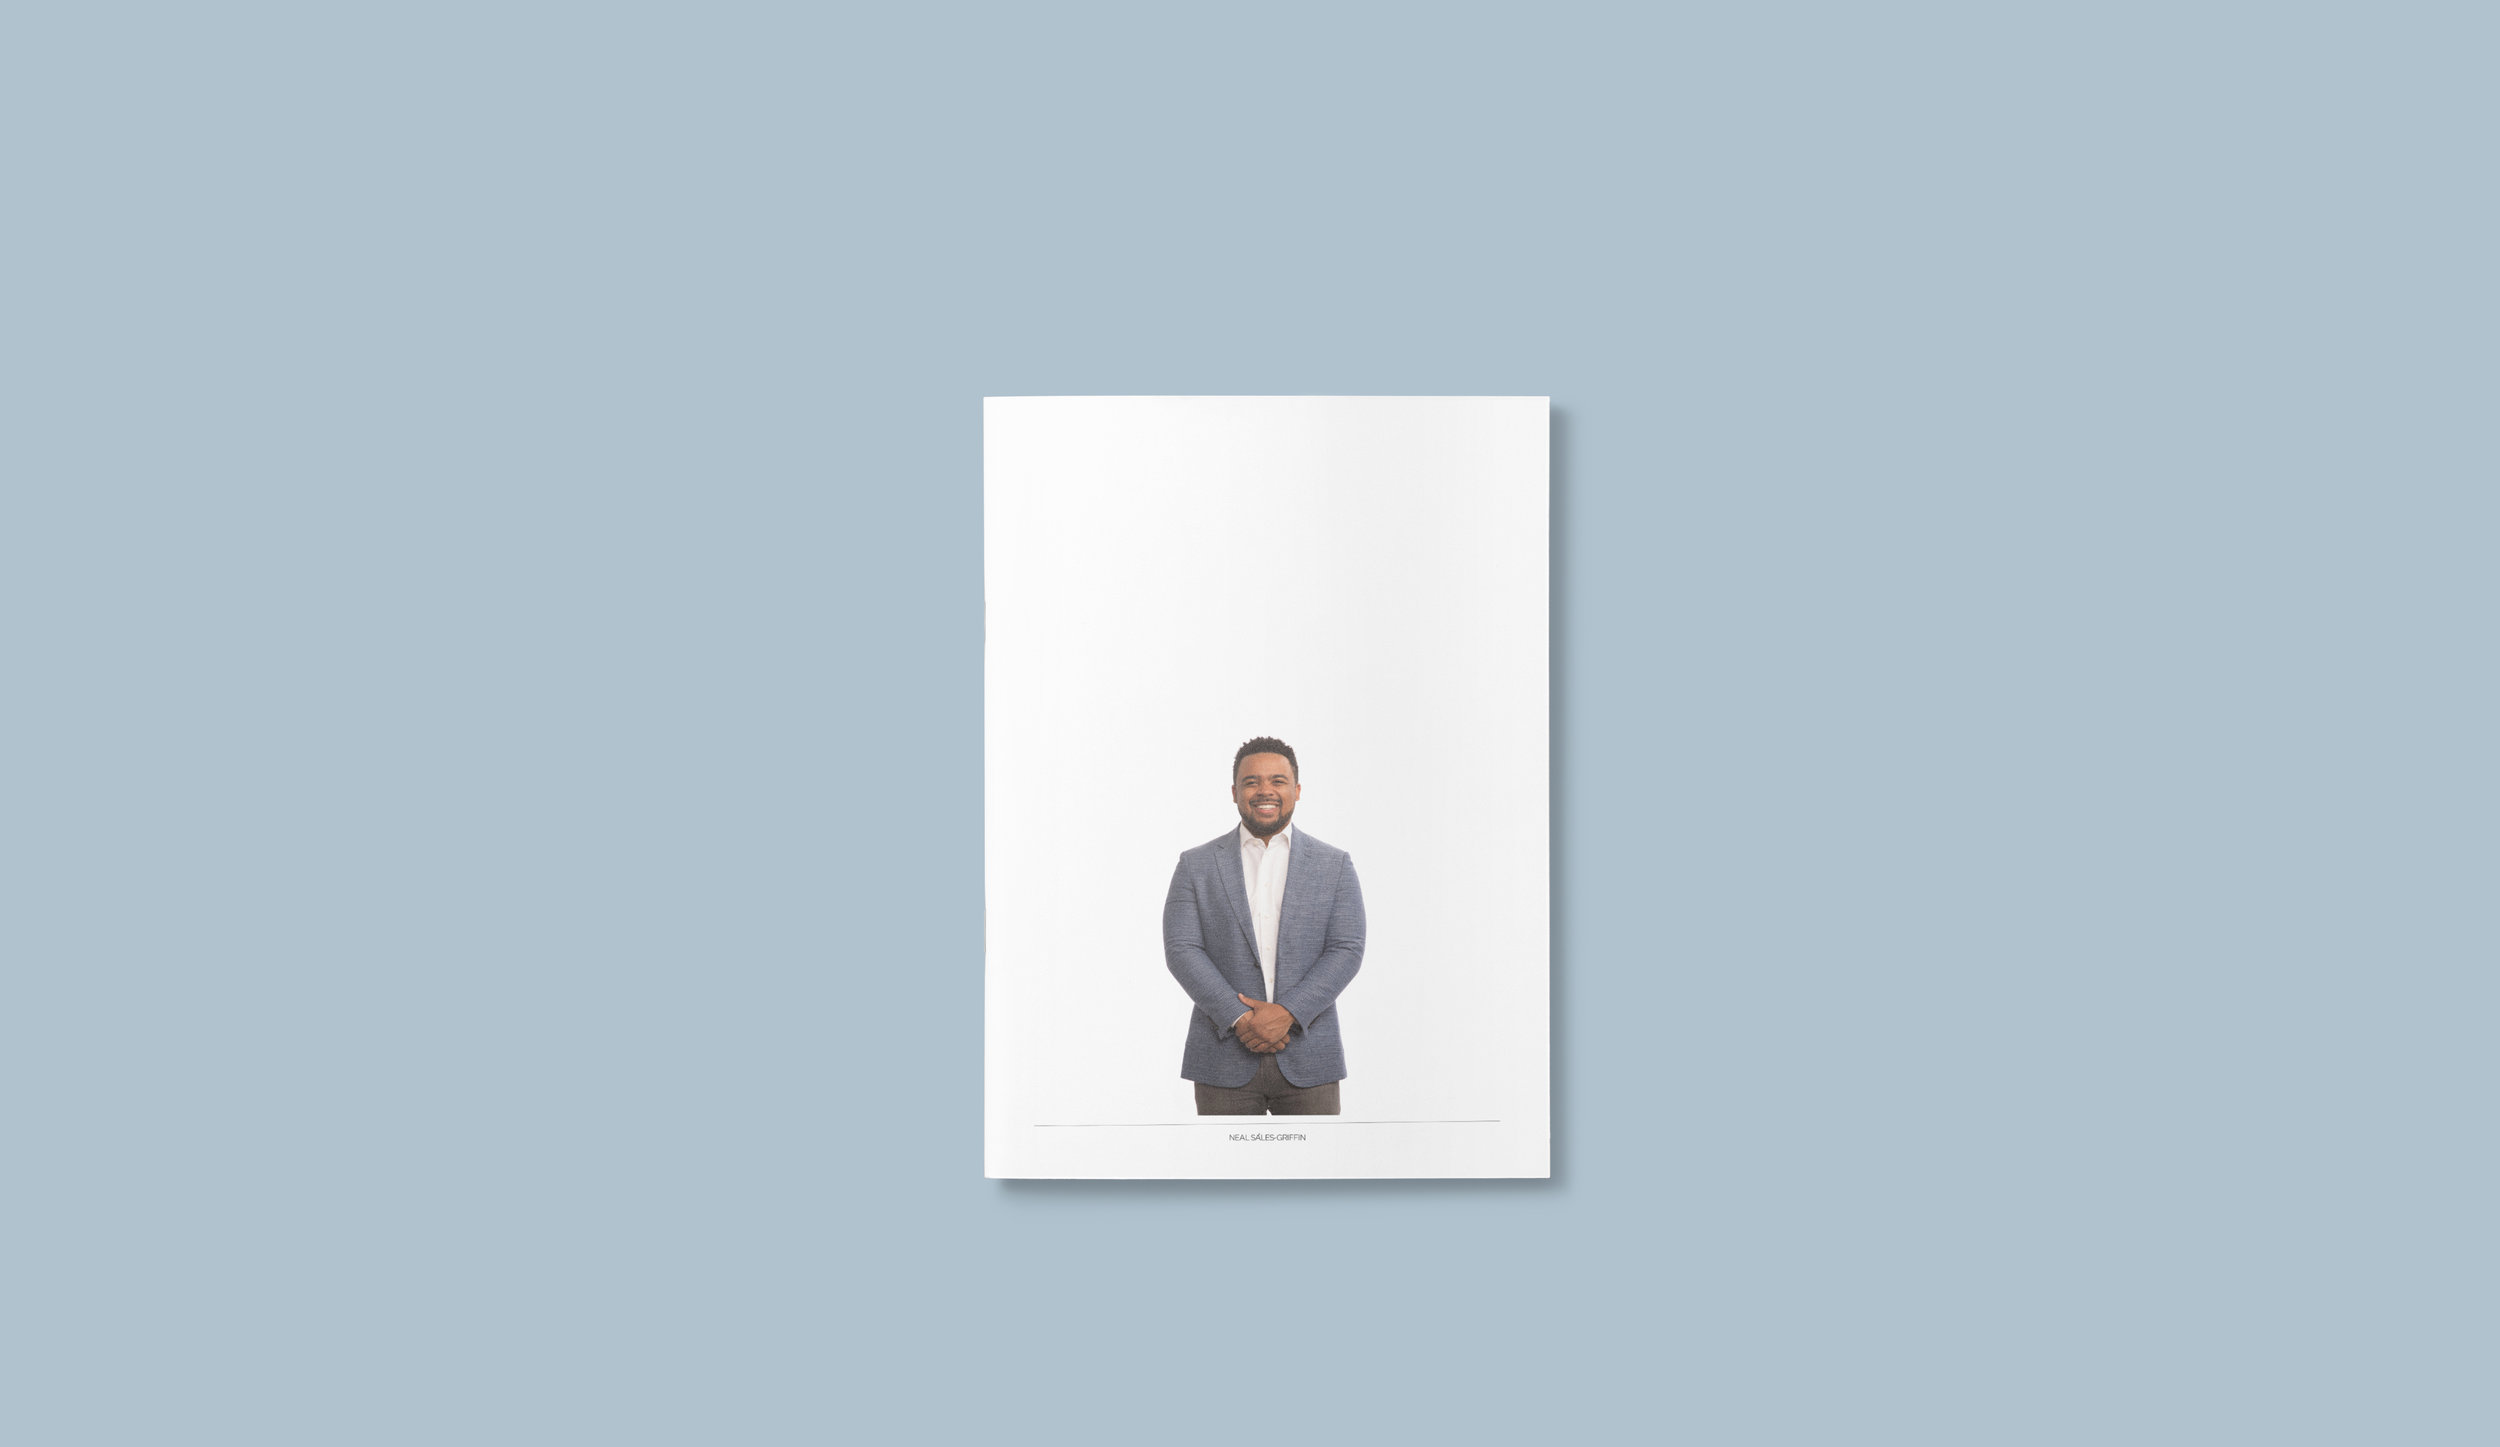 Campaign Prospectus cover (with slipcase removed to reveal the man)